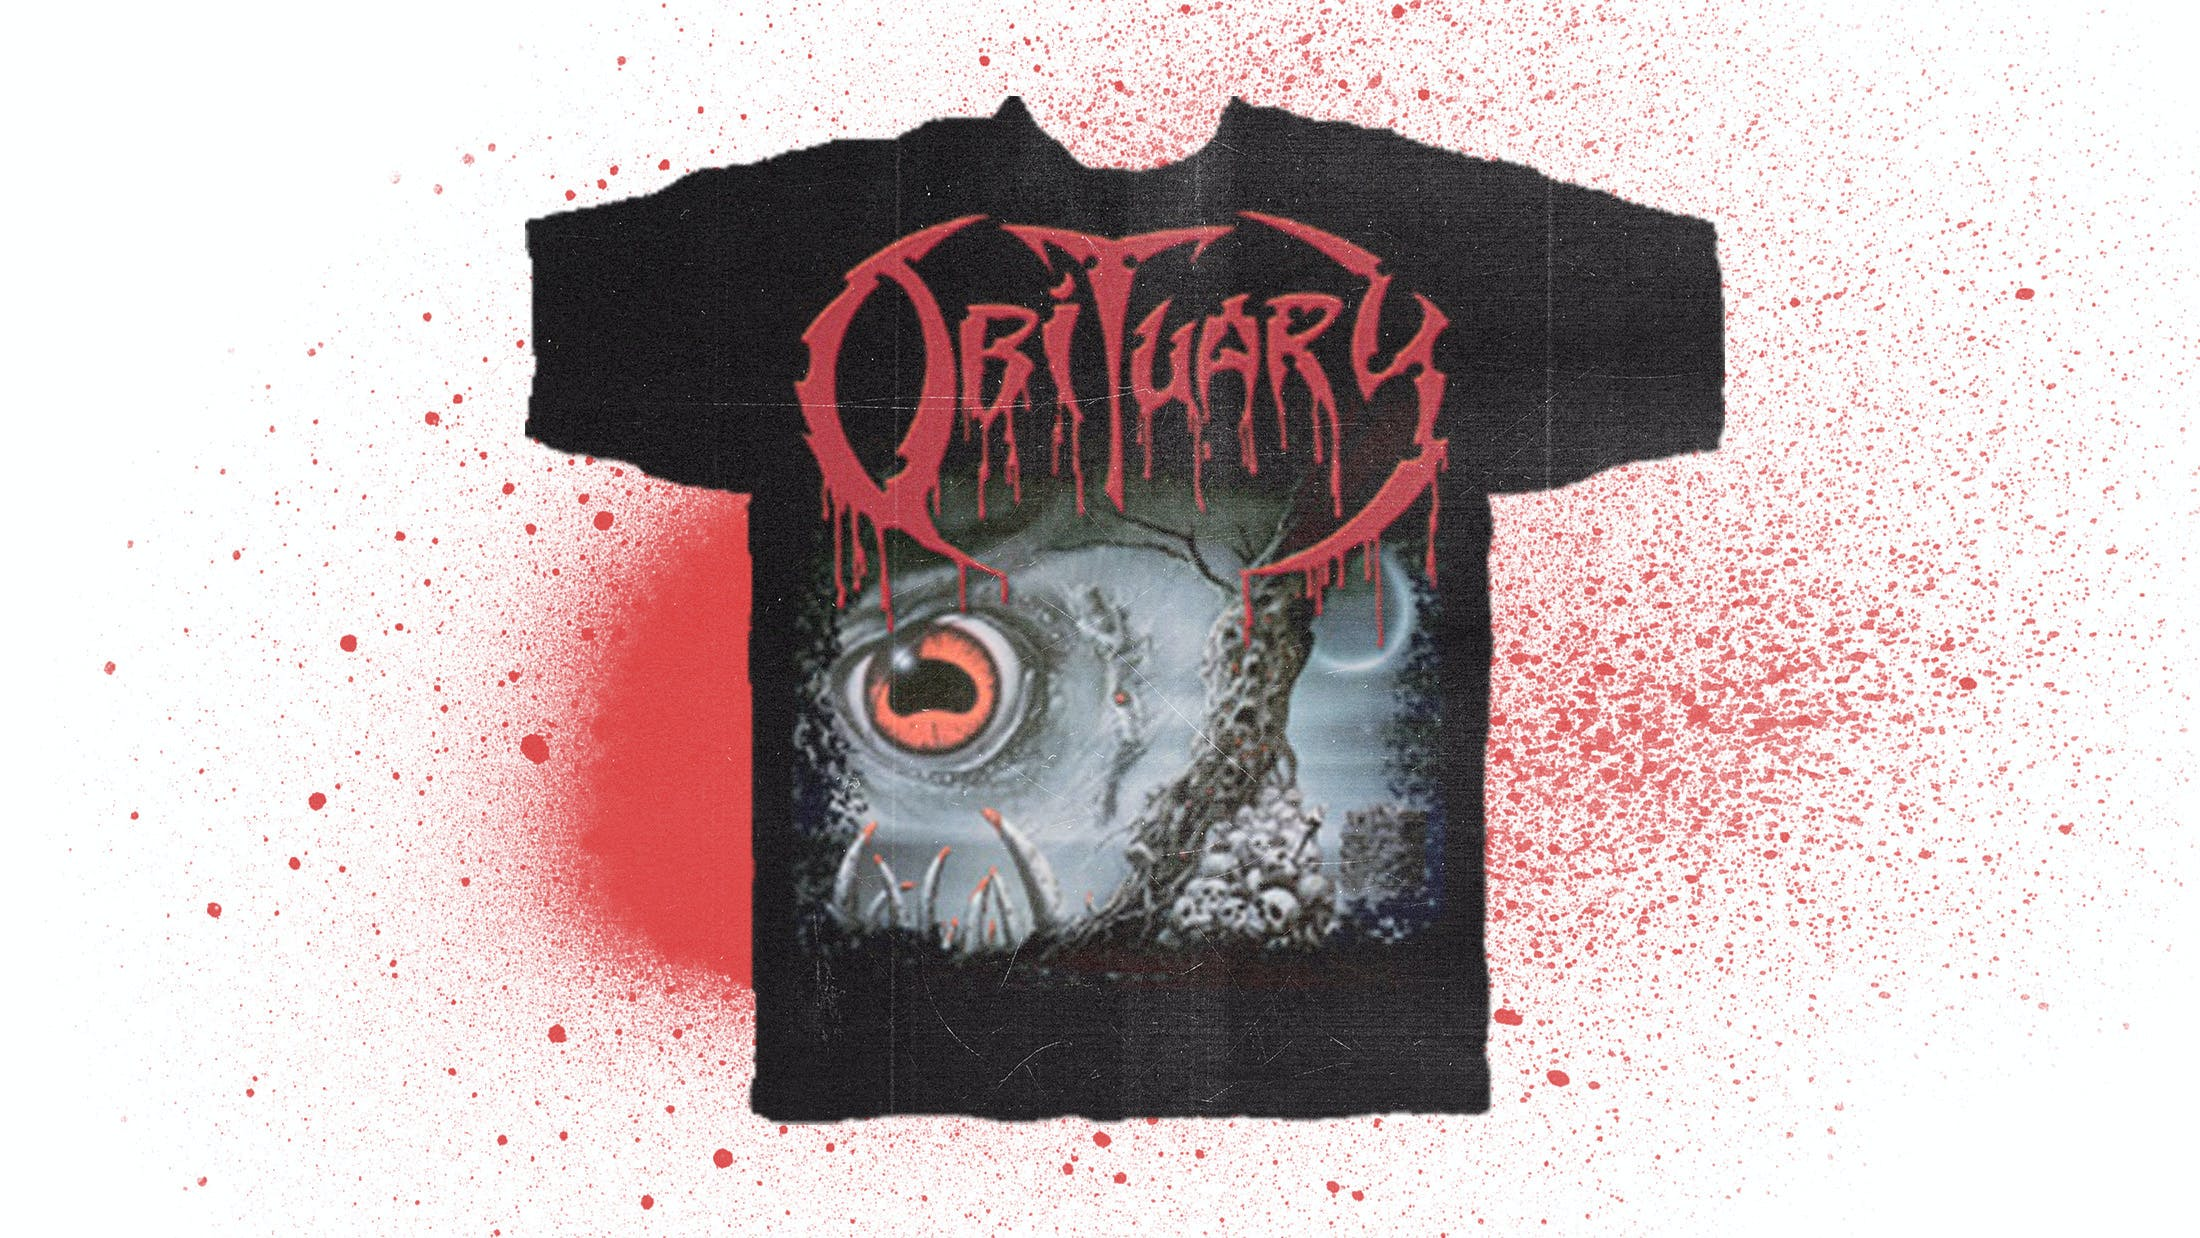 2ba2b092e Cause of Death is Obituary's second album, and the only one to feature  guitarist James Murphy (Death, Testament, etc.). Released in 1990, the  album featured ...